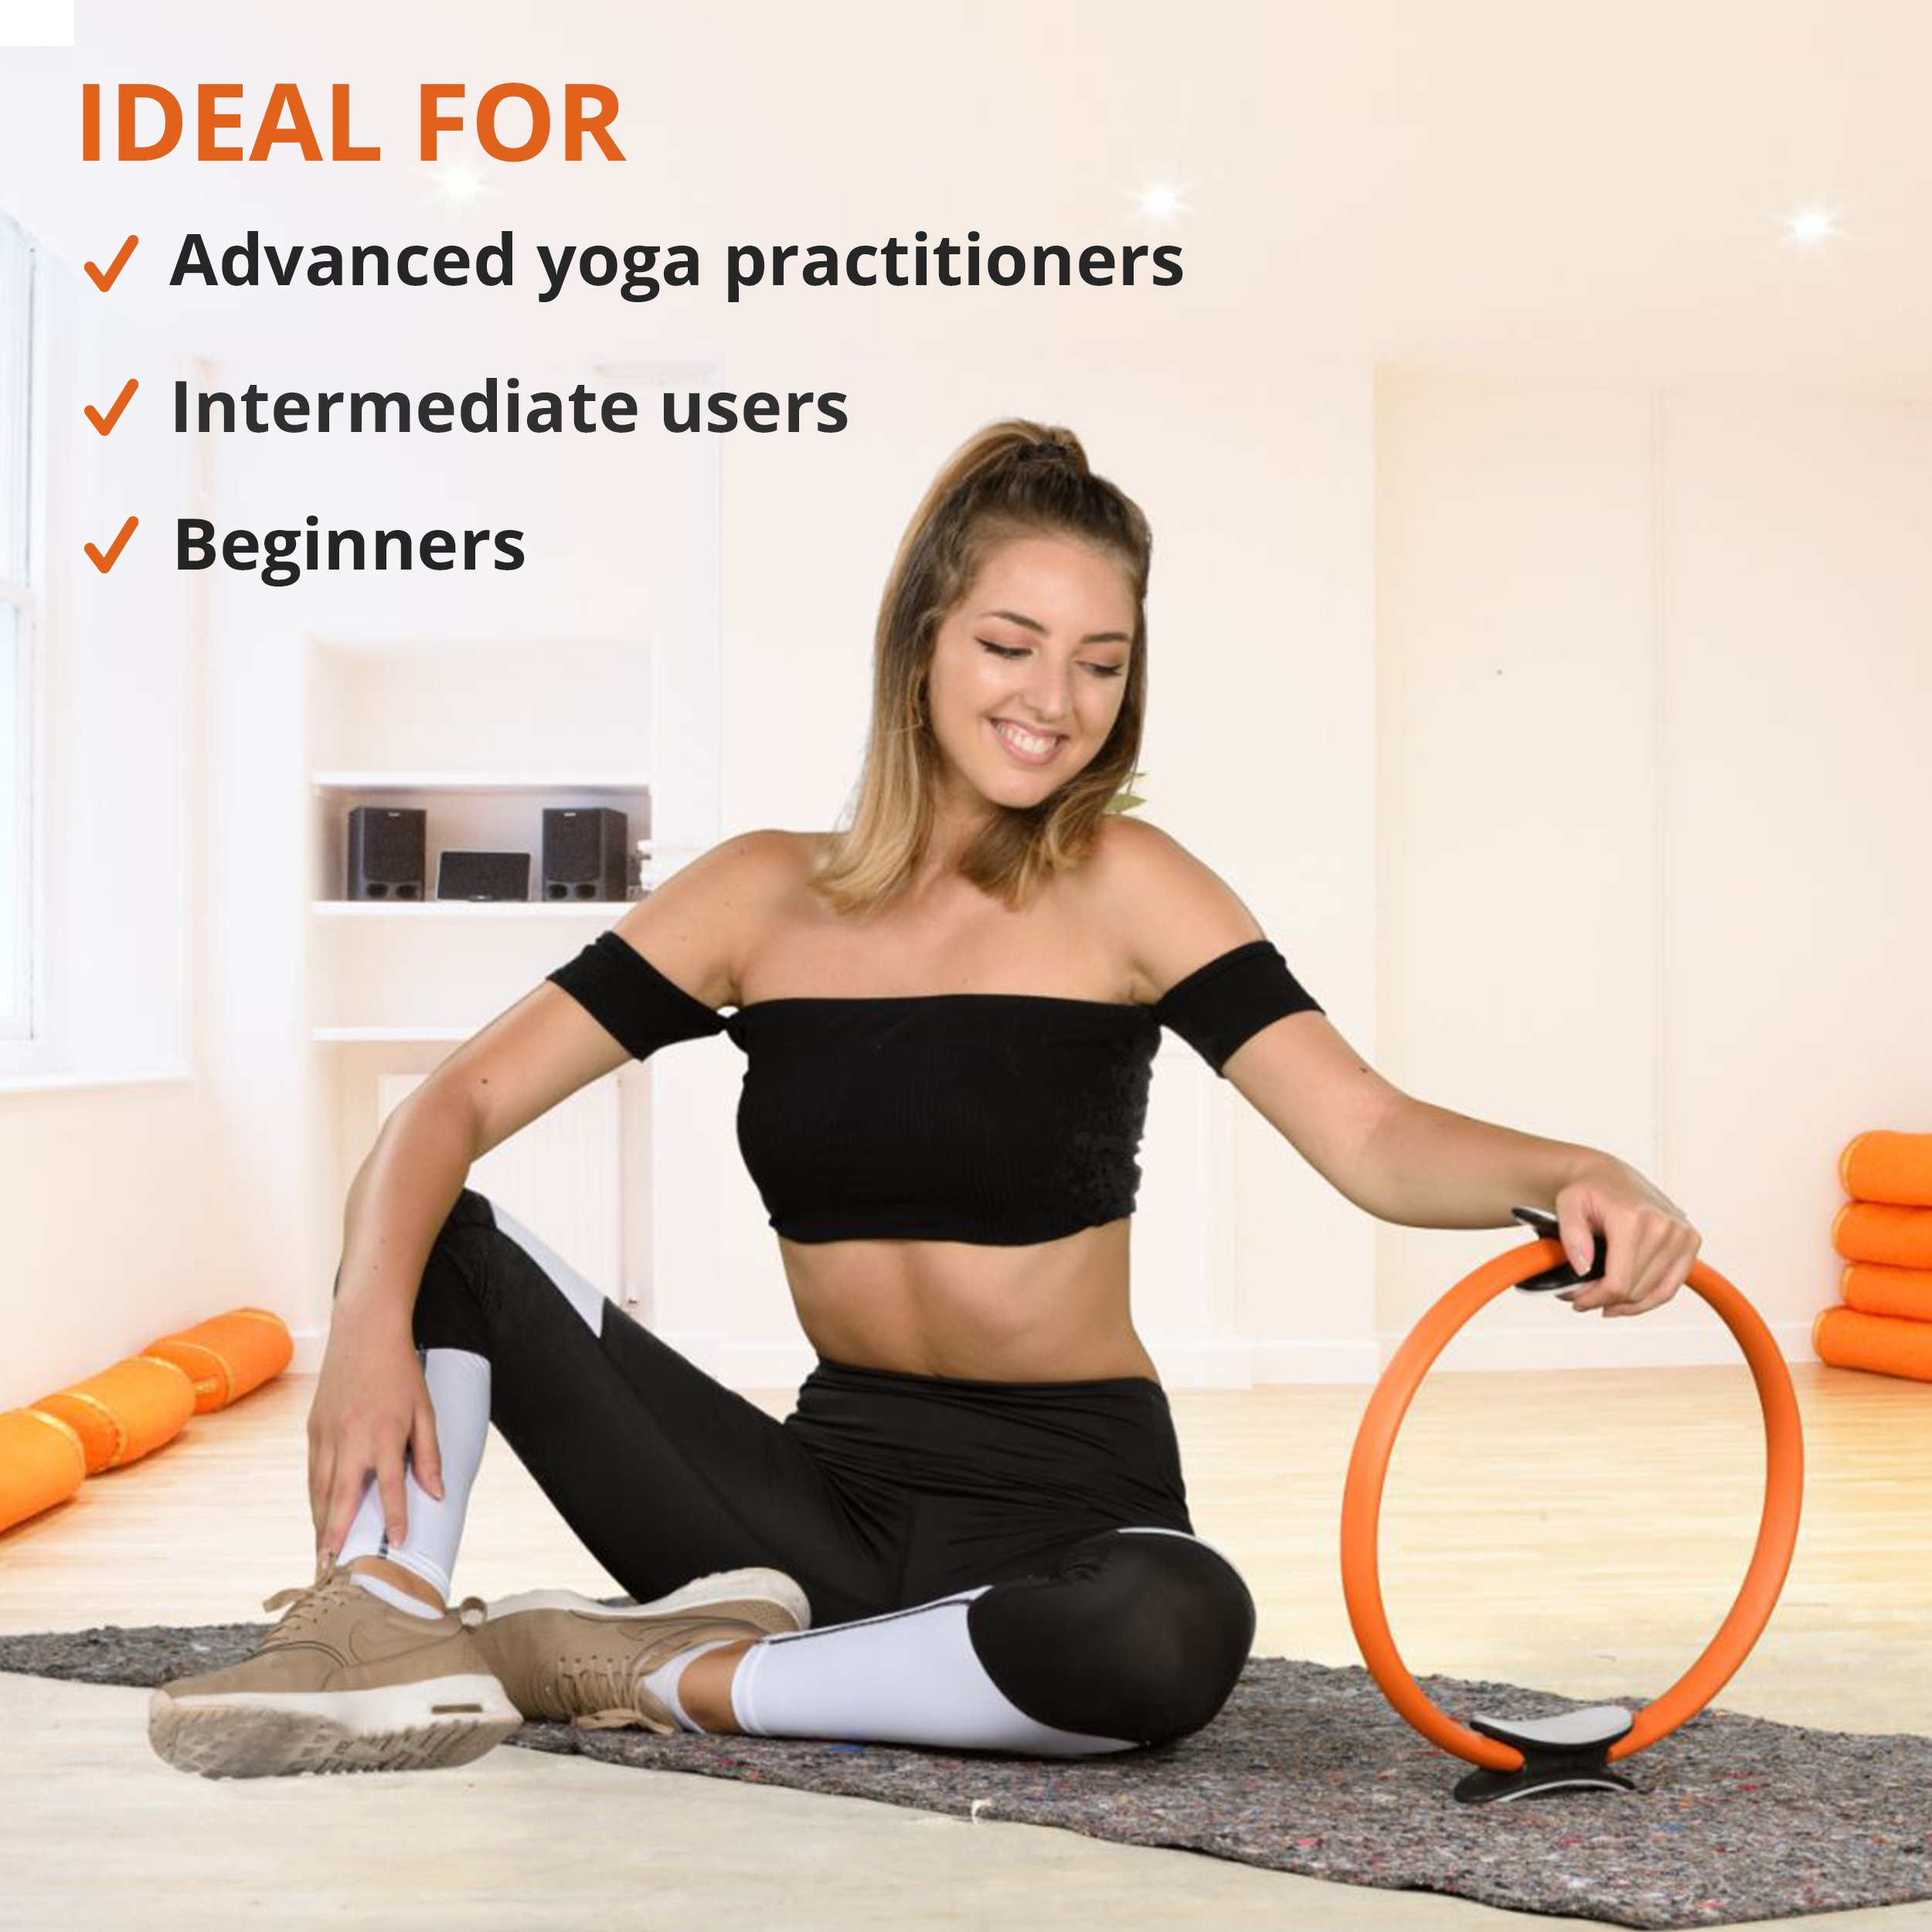 Balvia Fitness Pilates Yoga Ring Equipment Bundle with Non-Slip Grip Handles - Carrying Bag, Massage Ball and Exercise E-book Included - Premium Full Body Toning Fitness Circle by Balvia Fitness (Image #3)